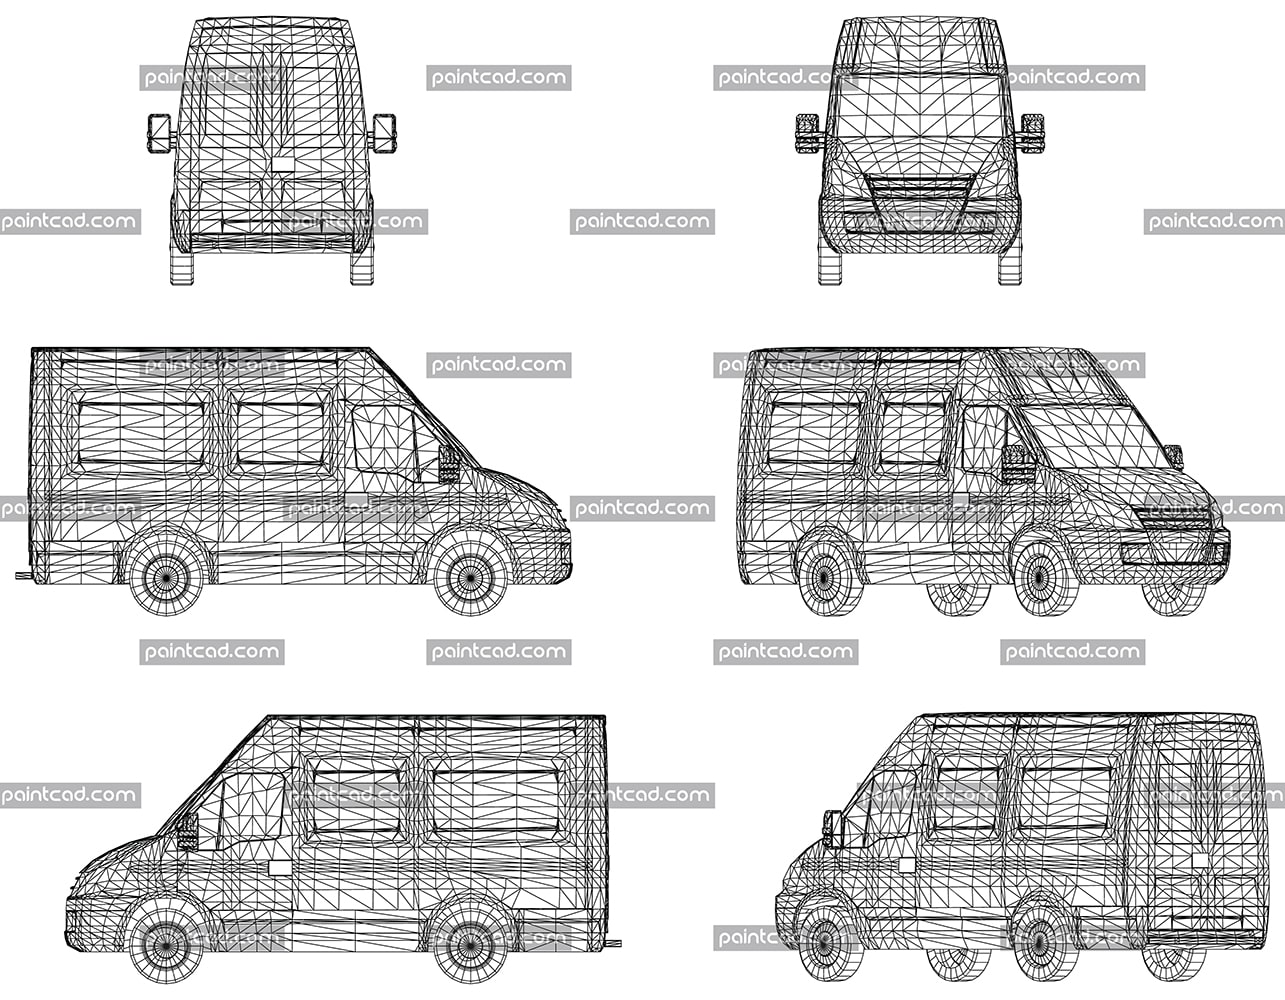 Sketch with wireframe design on three-dimensional van - vector illustration